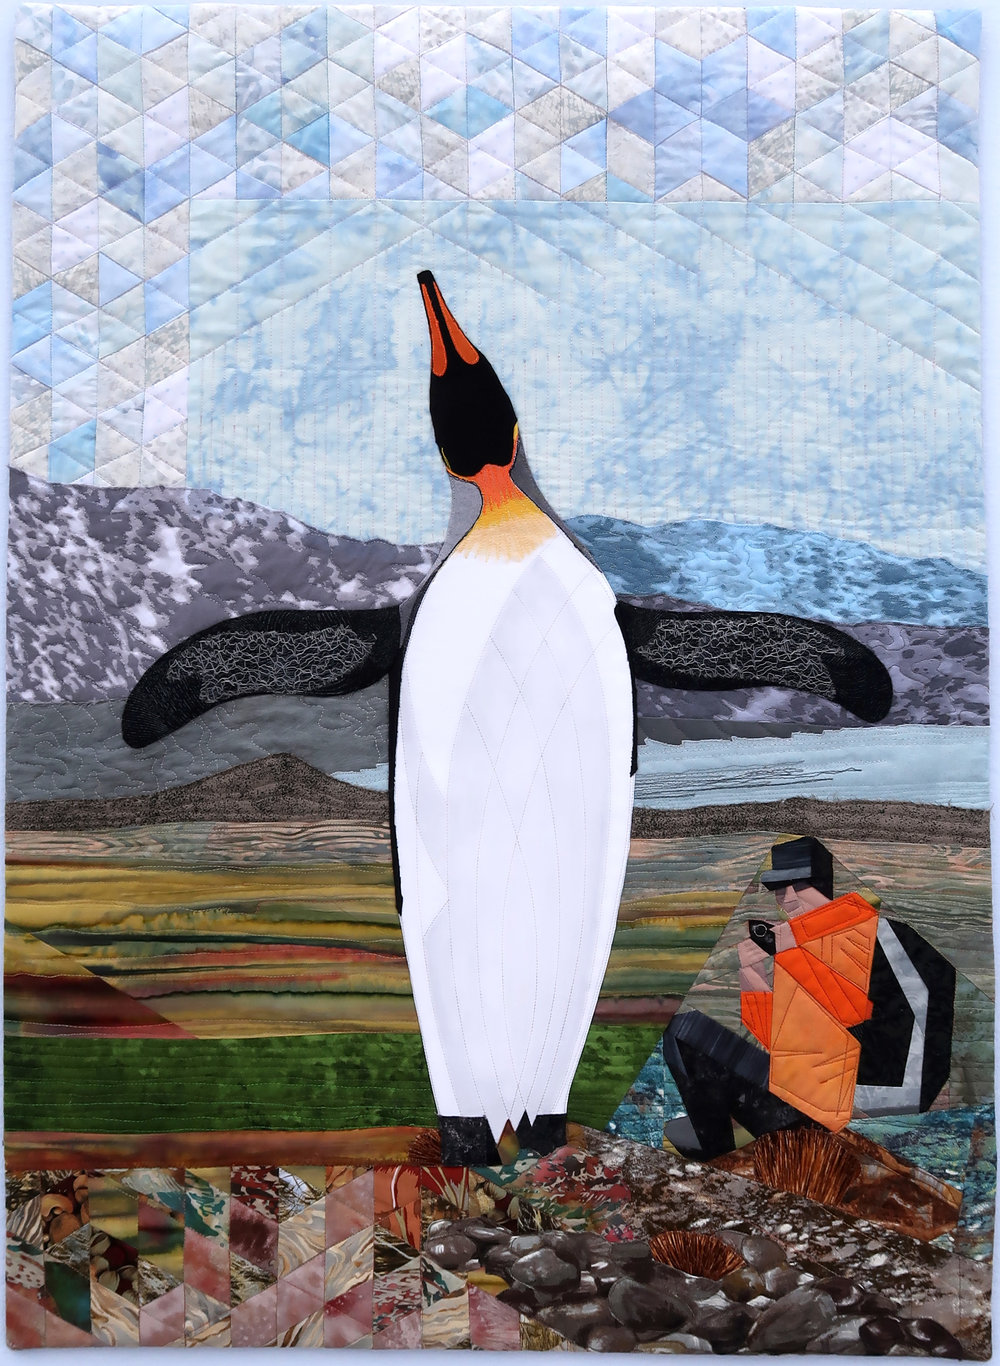 """Antarctic Ululation - 23"""" x 32""""Sometimes we're lucky enough to observe great moments in nature. In this instant, self and subject are one. Awareness that the air beneath your wings is the same air that trills in my throat. I see you - I am here!"""